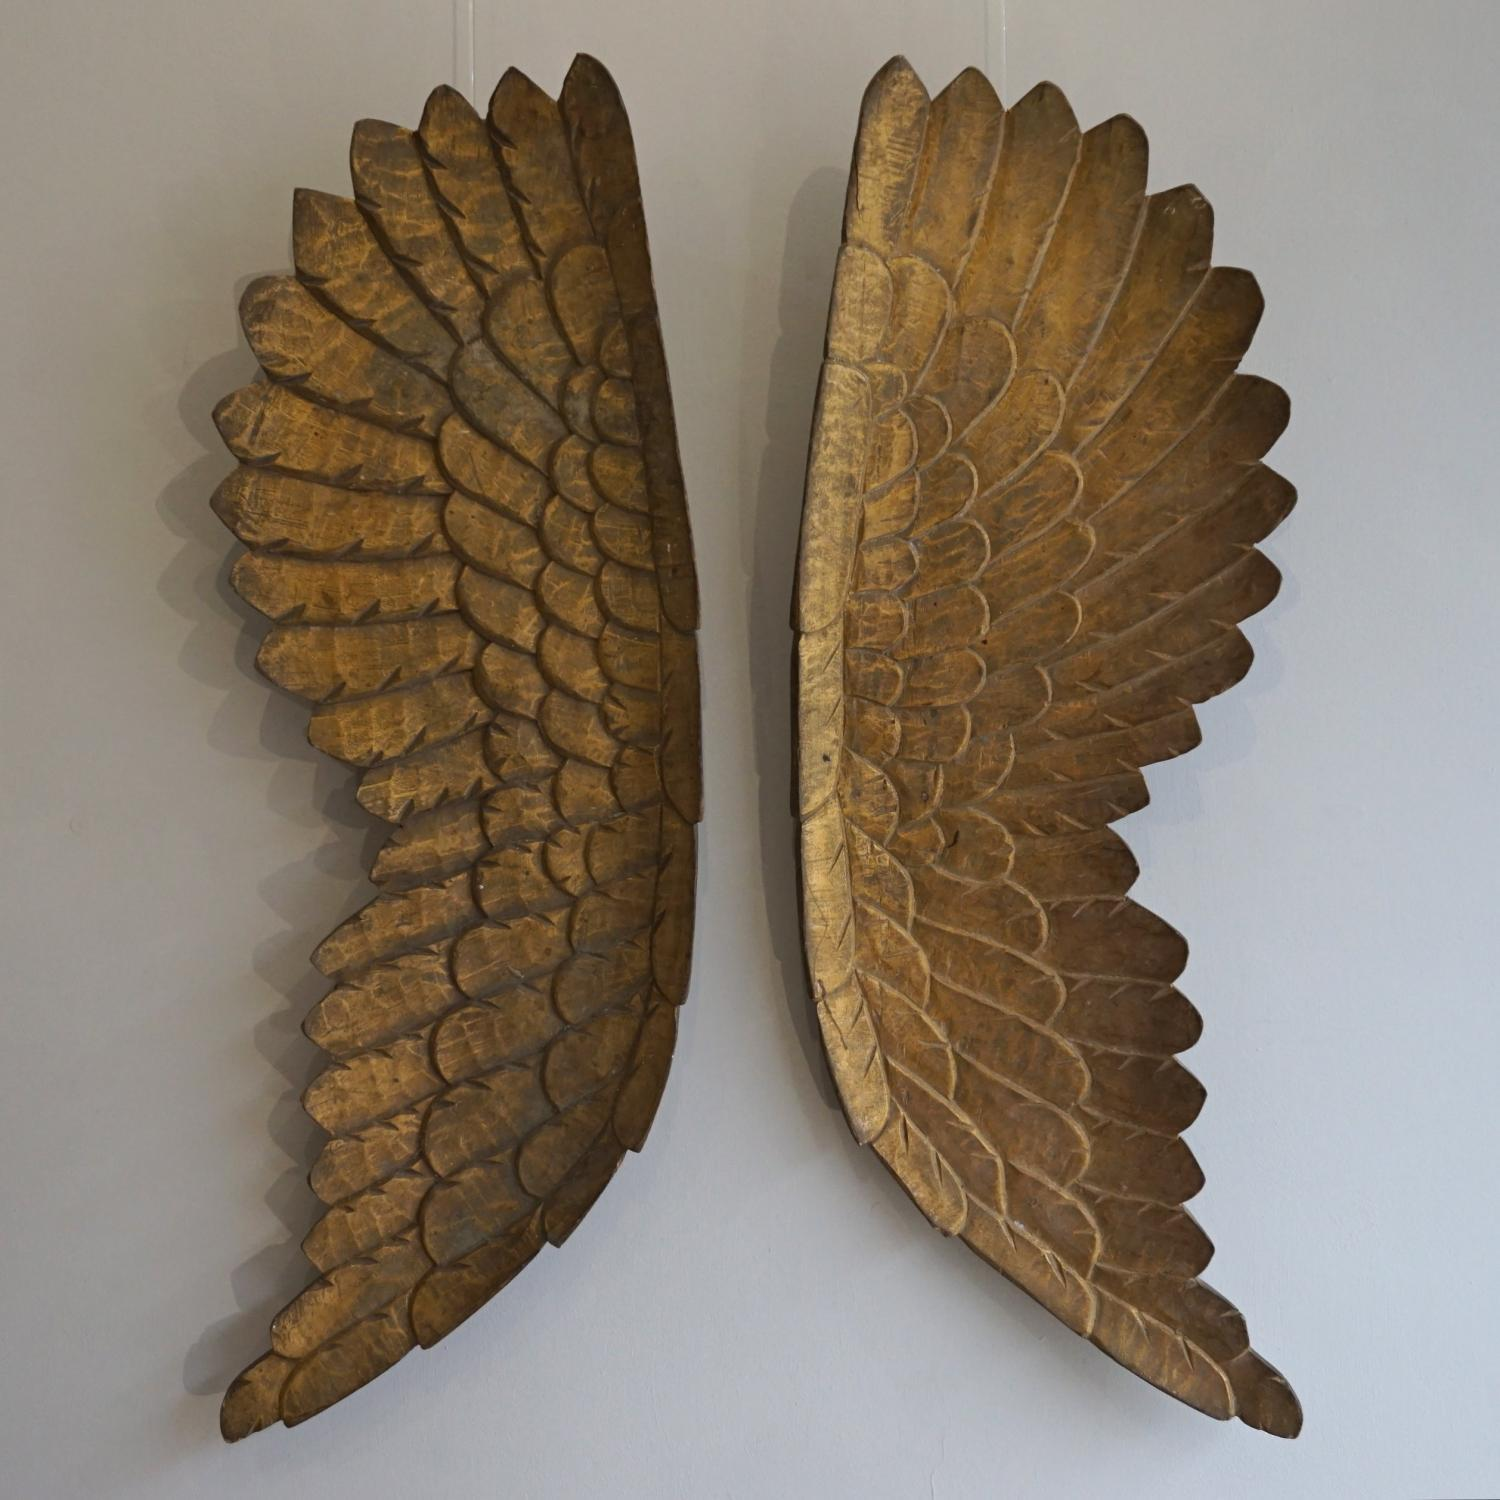 OUTSTANDING PAIR OF 19TH CENTURY ANGELS WINGS